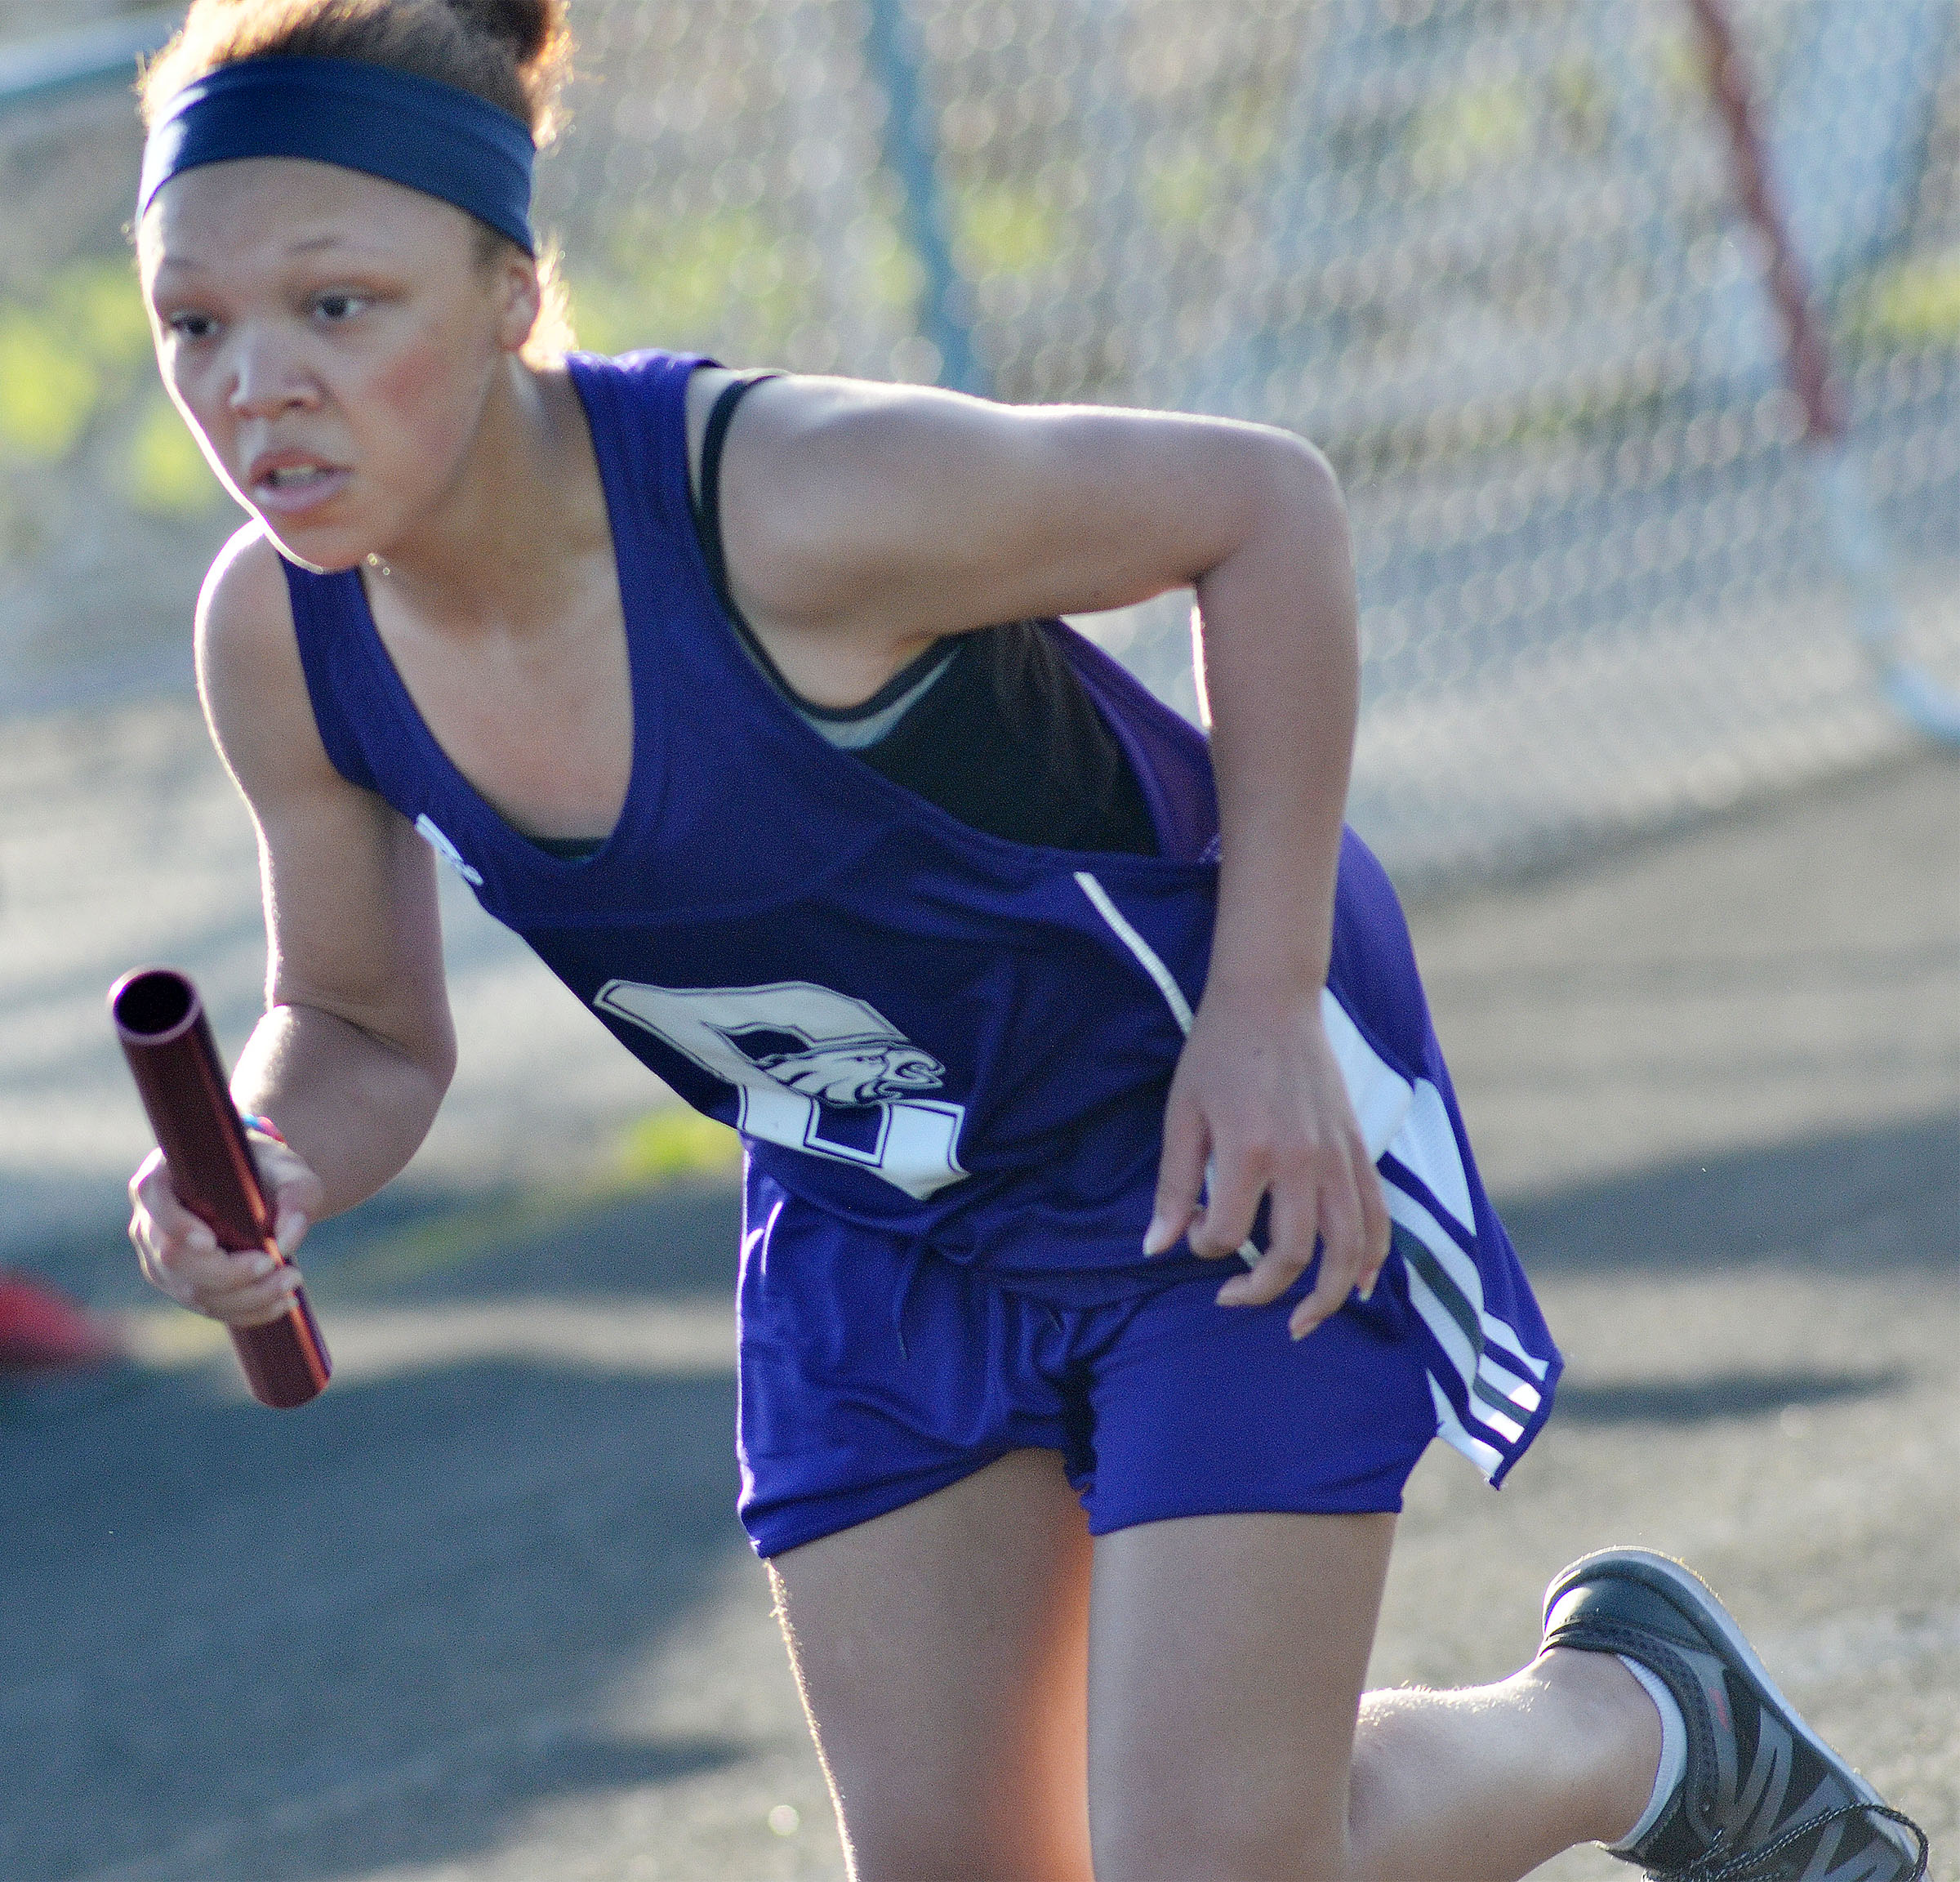 Campbellsville Middle School seventh-grader Kitana Taylor starts her run.